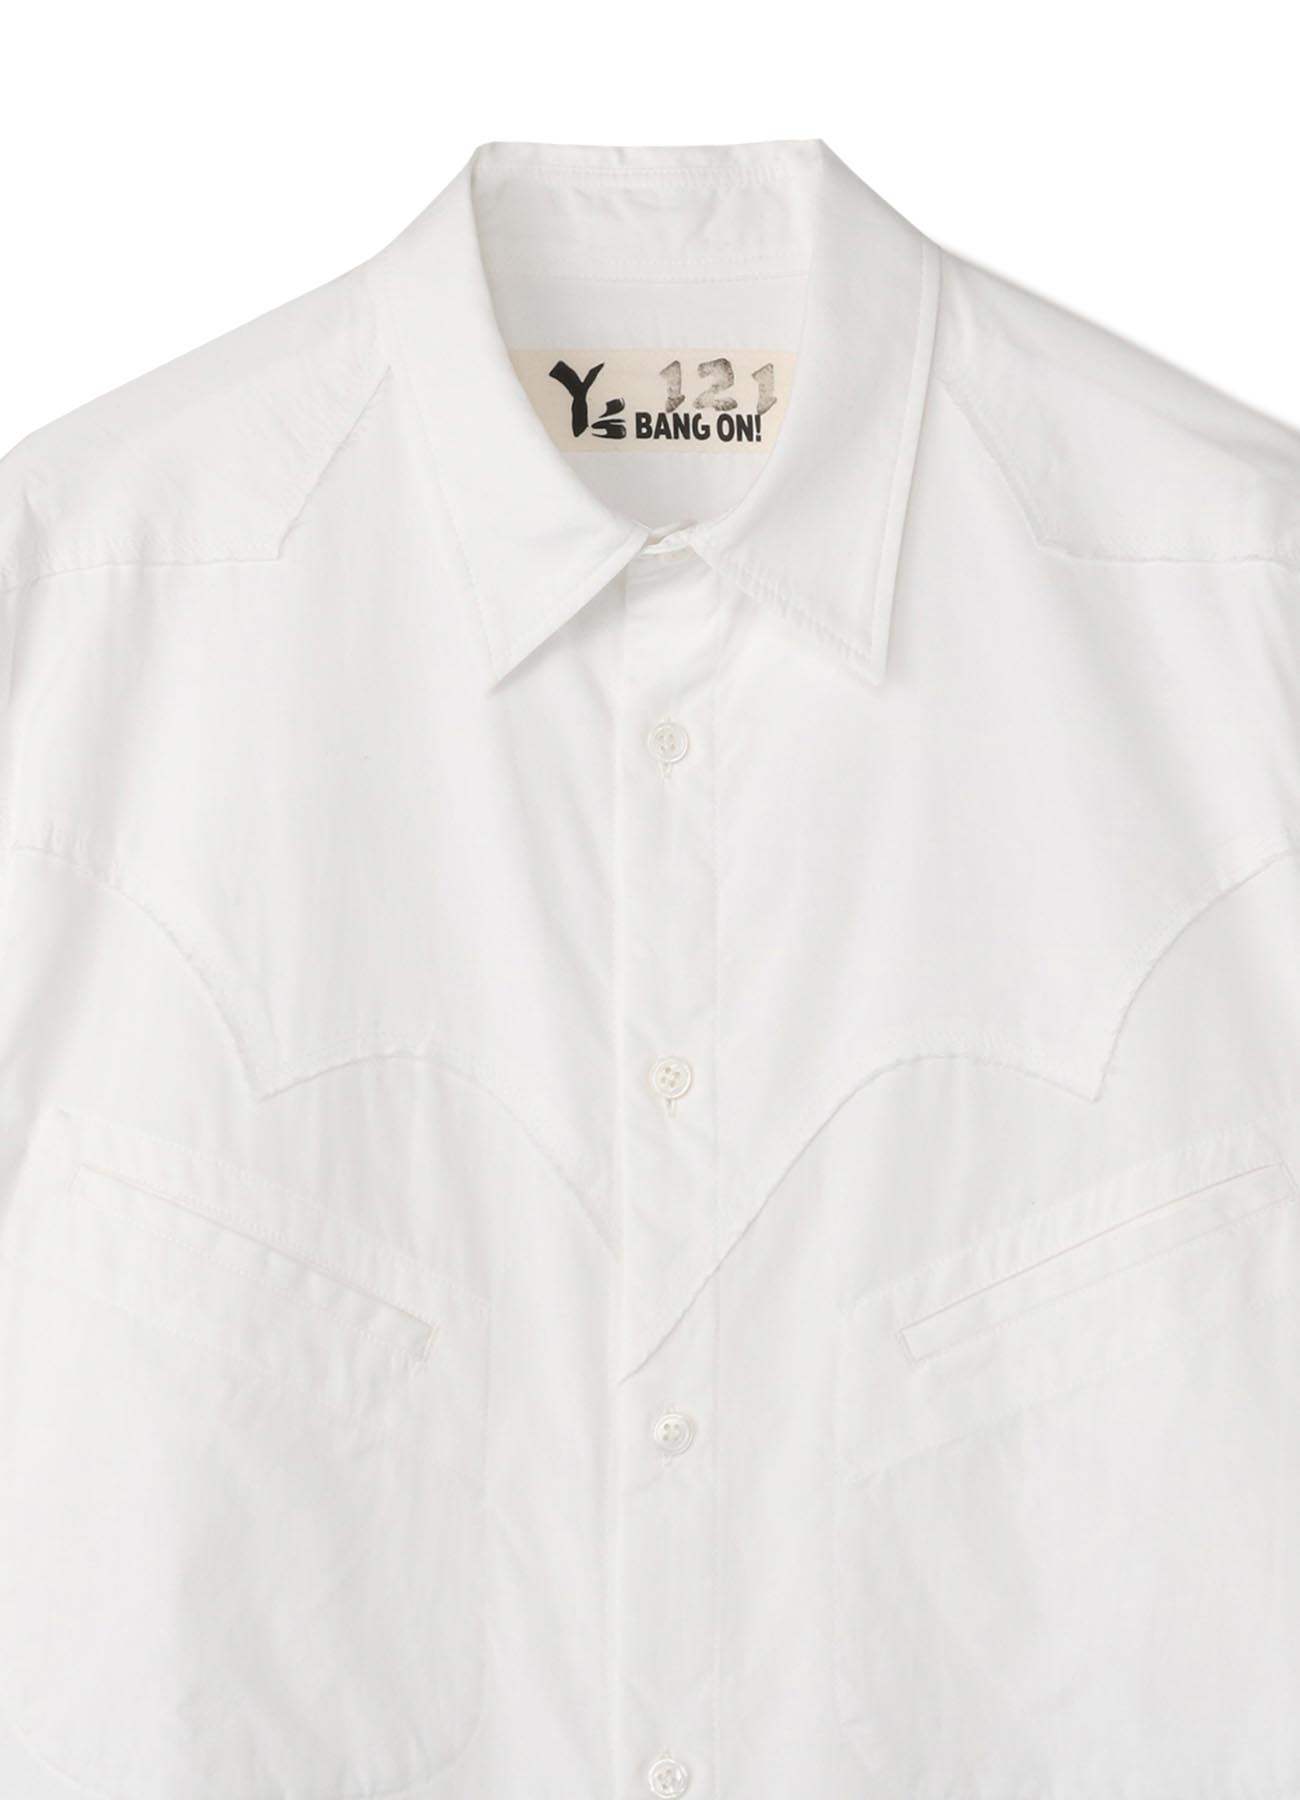 Y's BANG ON!No.121 Western style-shirts Cotton broad